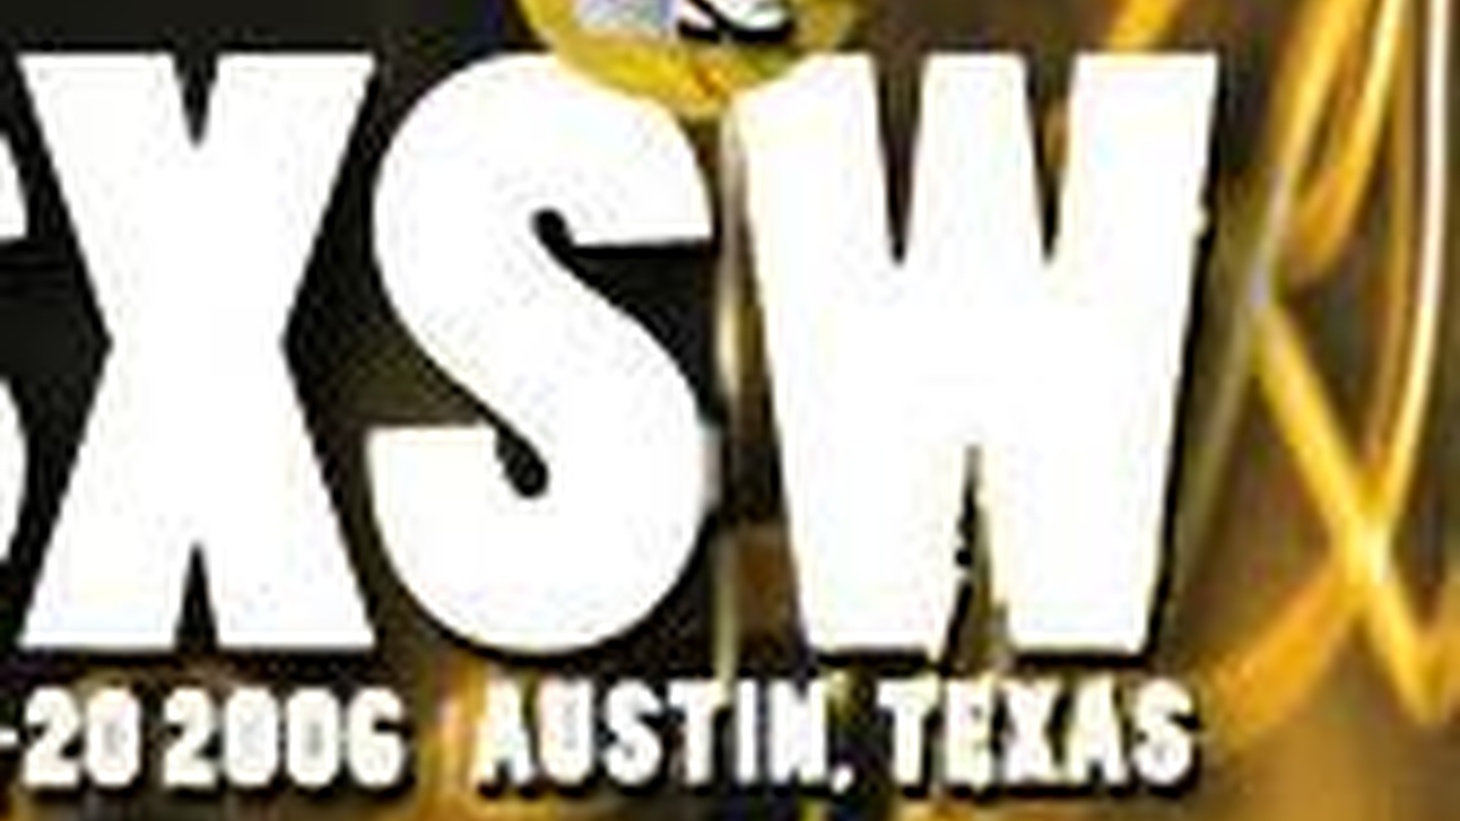 Members of the music industry made their annual pilgrimage to Austin, Texas last week.  For 20 years, the South By Southwest music festival has played an integral role in presenting new and burgeoning talent...